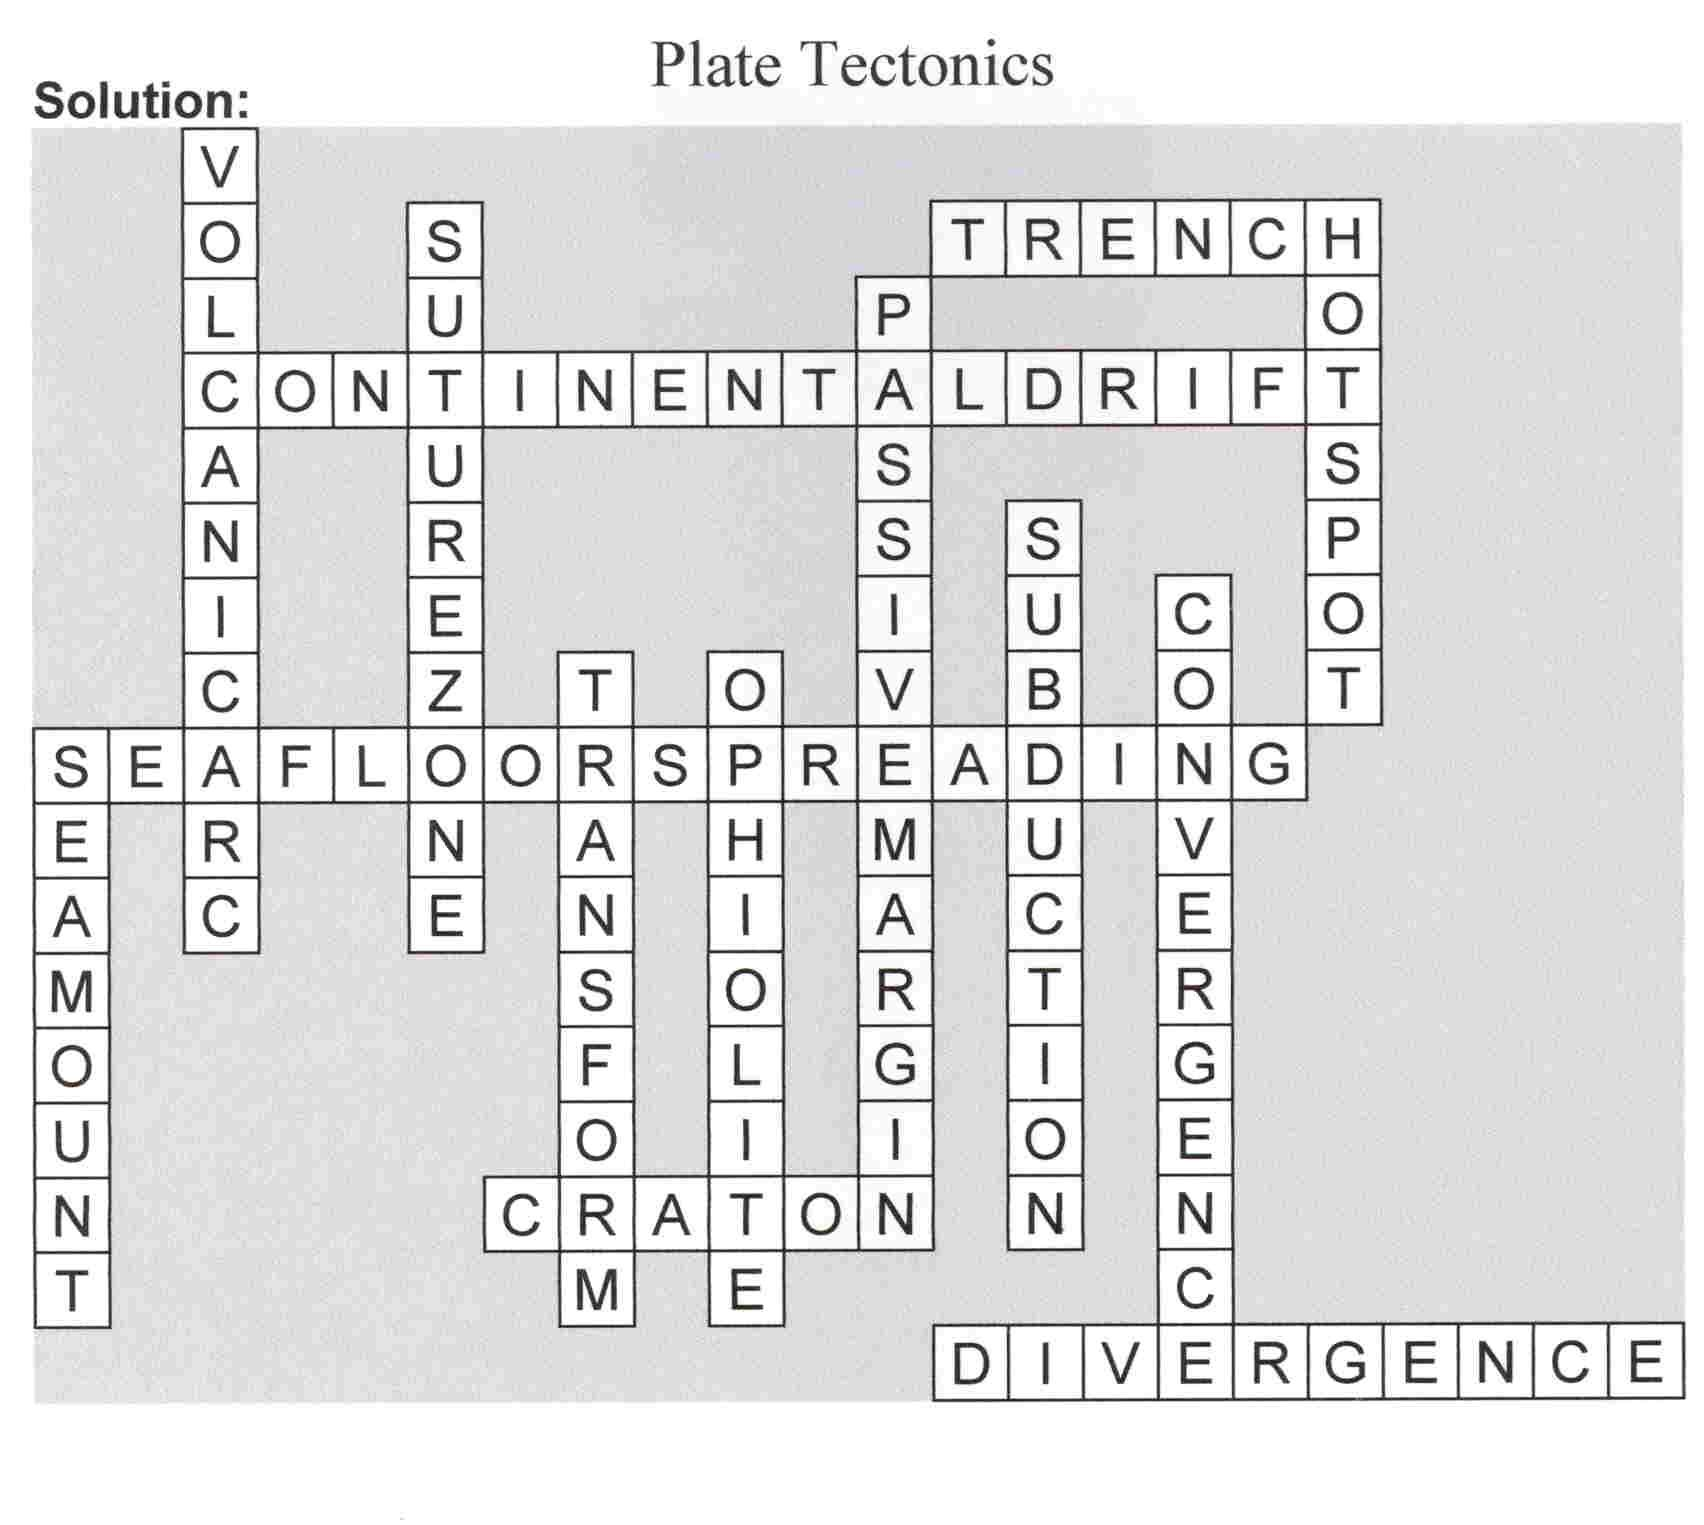 Awesome Plate Tectonics Crossword Puzzle